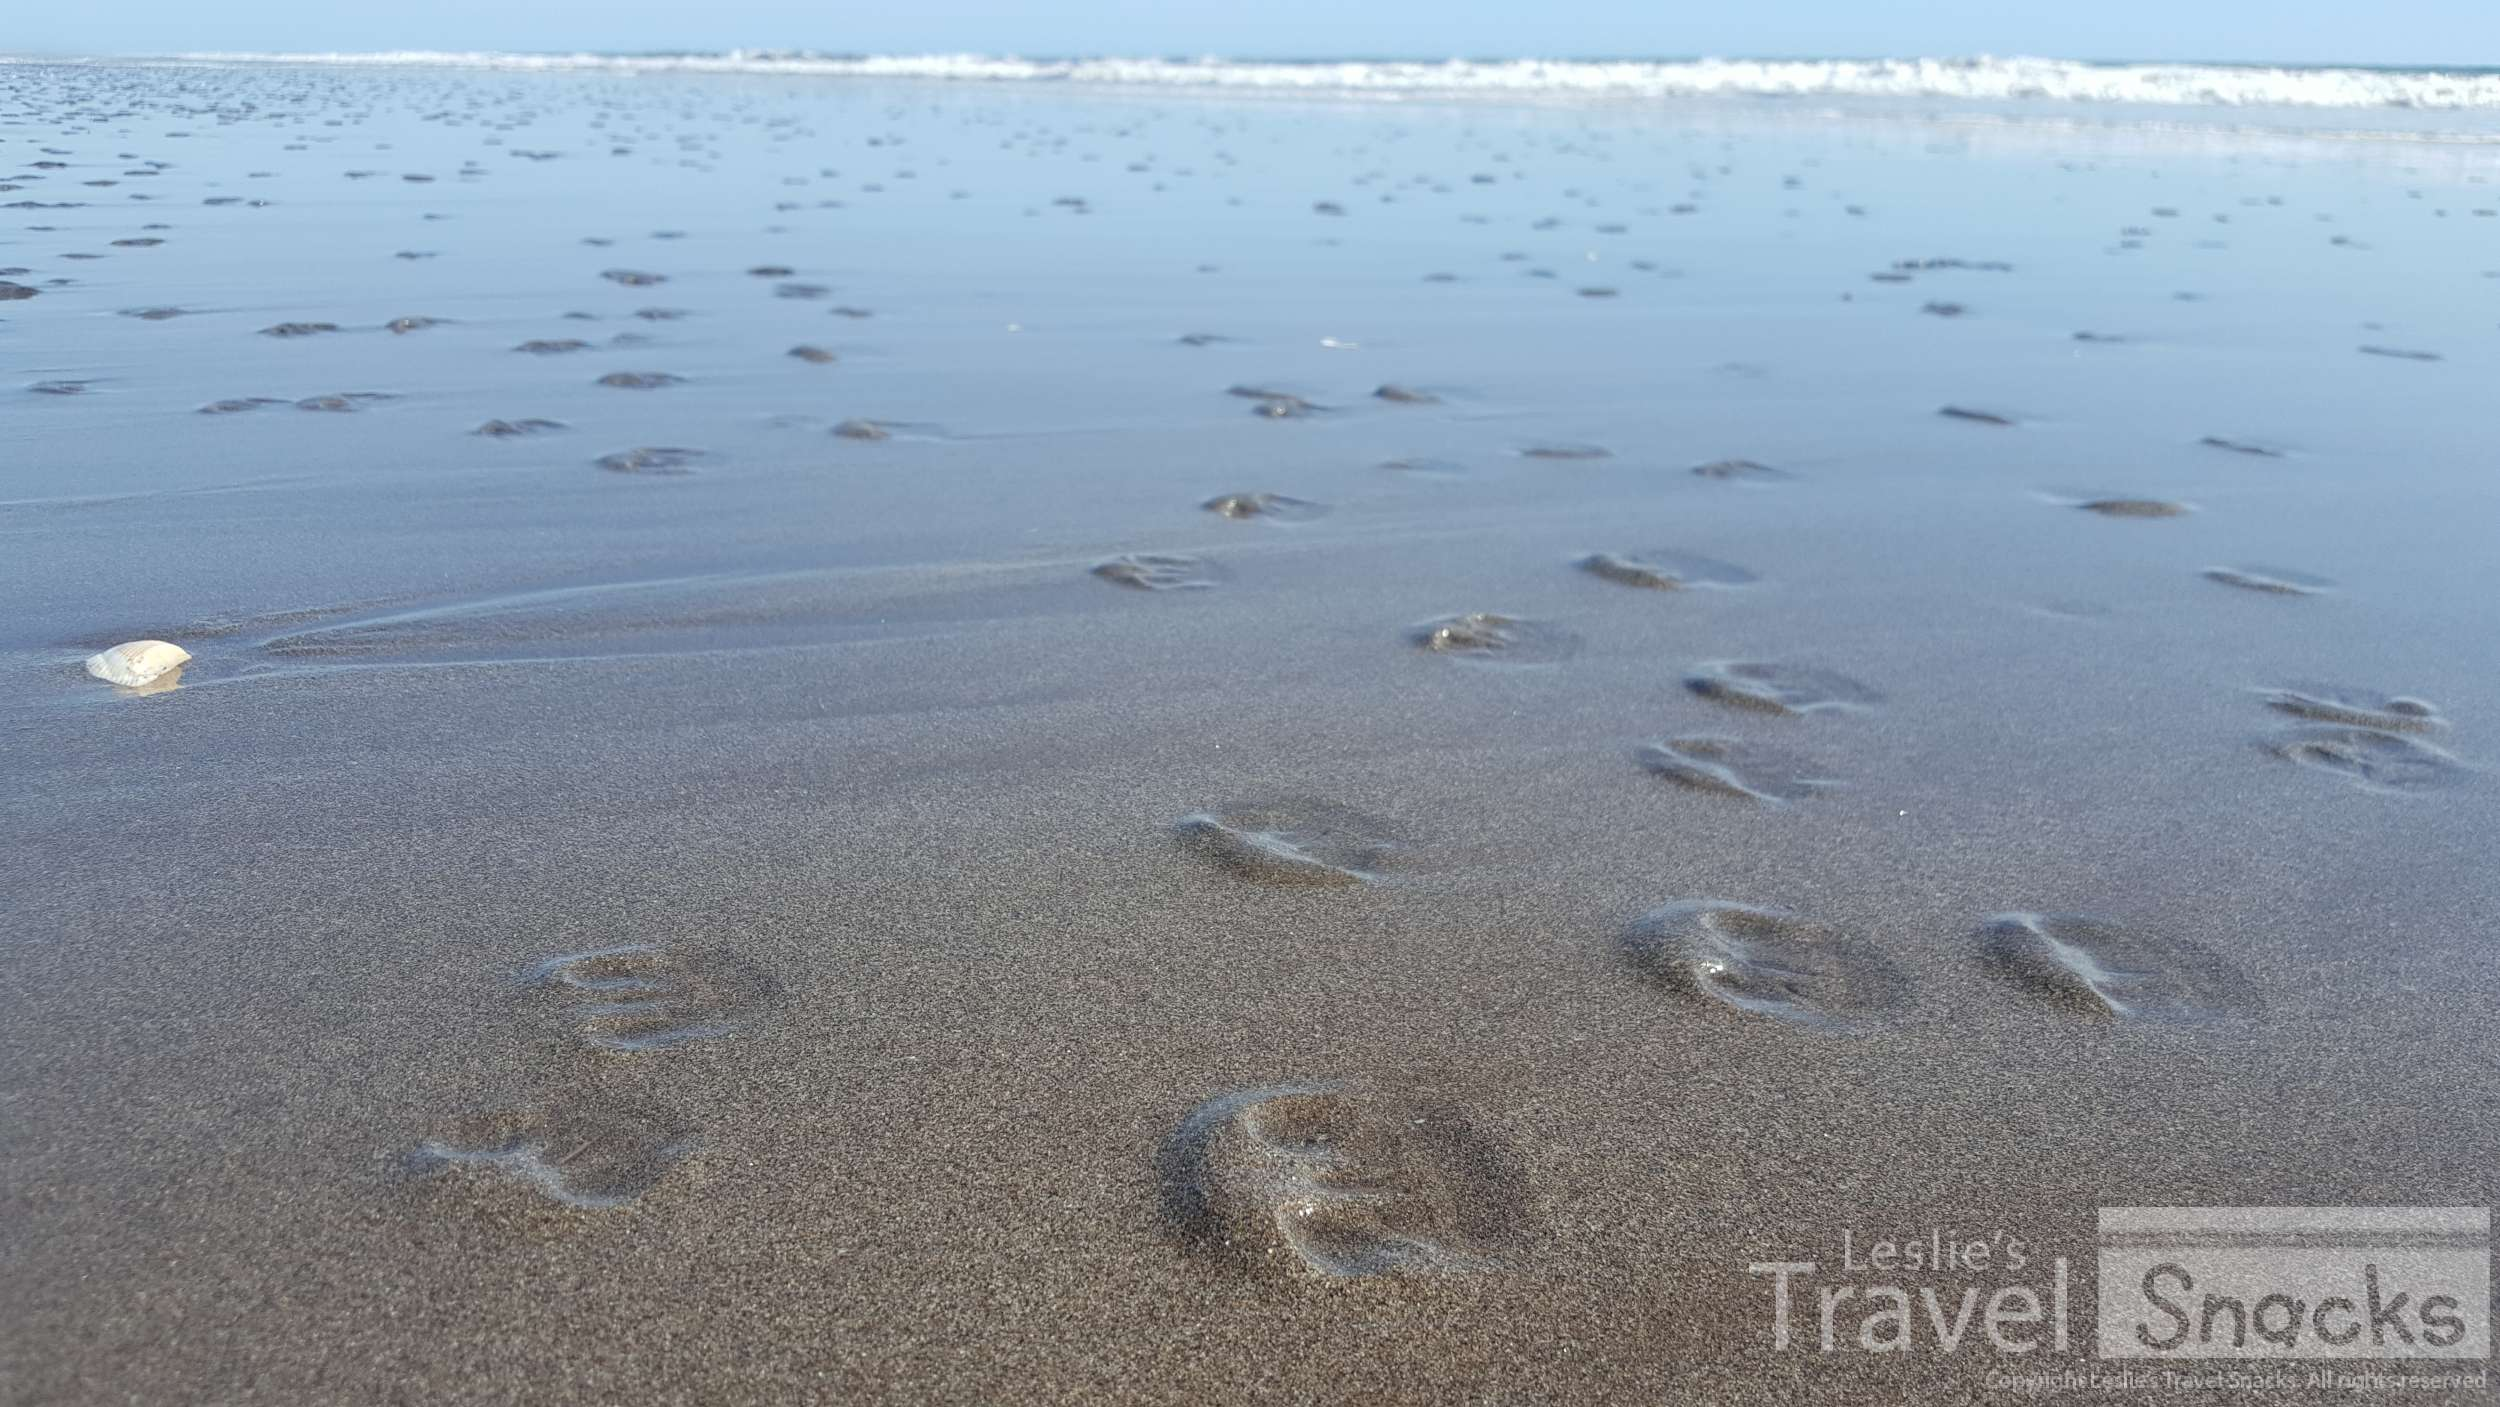 Wow, there were hundreds of live sand dollars on this beach in El Salvador!